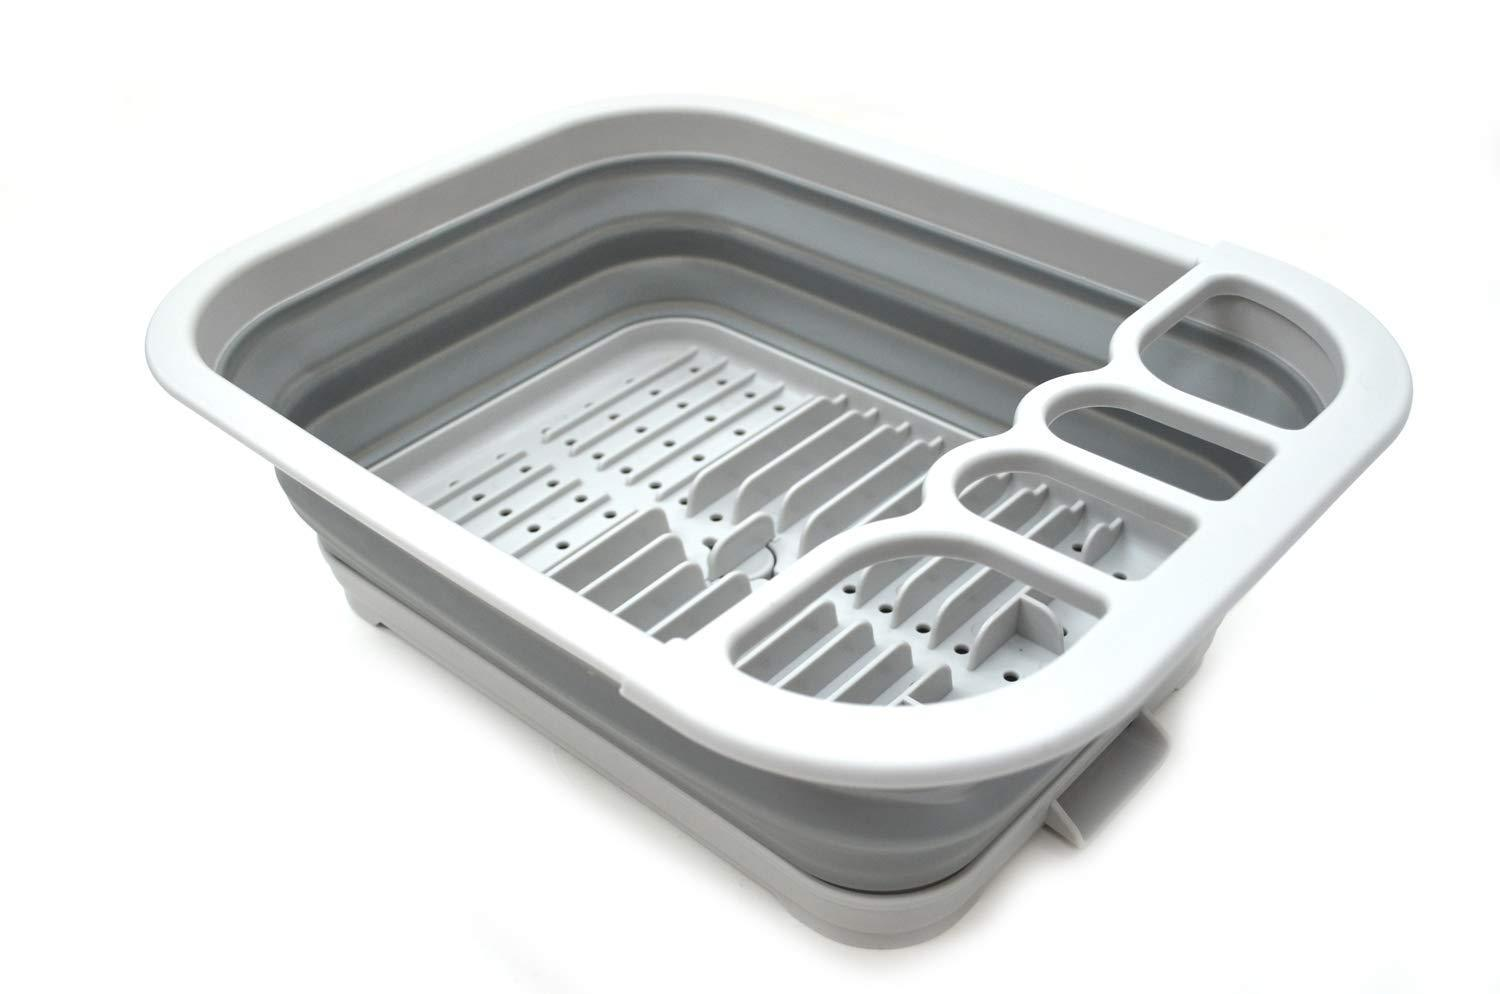 Order now sammart set of 12 collapsible dish drainer with drainer board foldable drying rack set portable dinnerware organizer space saving kitchen storage tray 12 grey